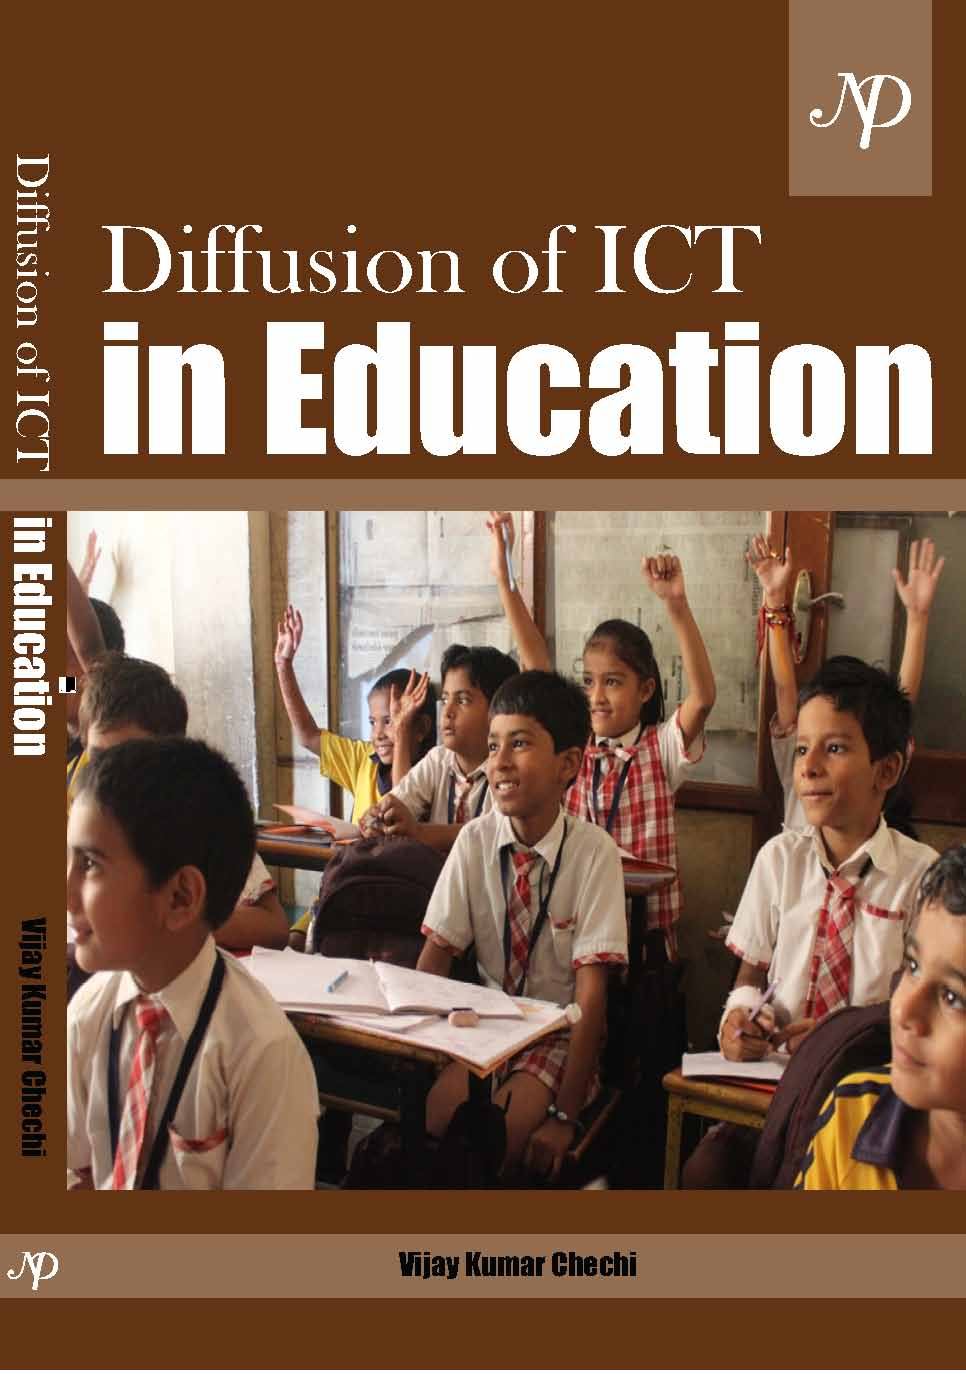 Diffusion of ICT in Education.jpg